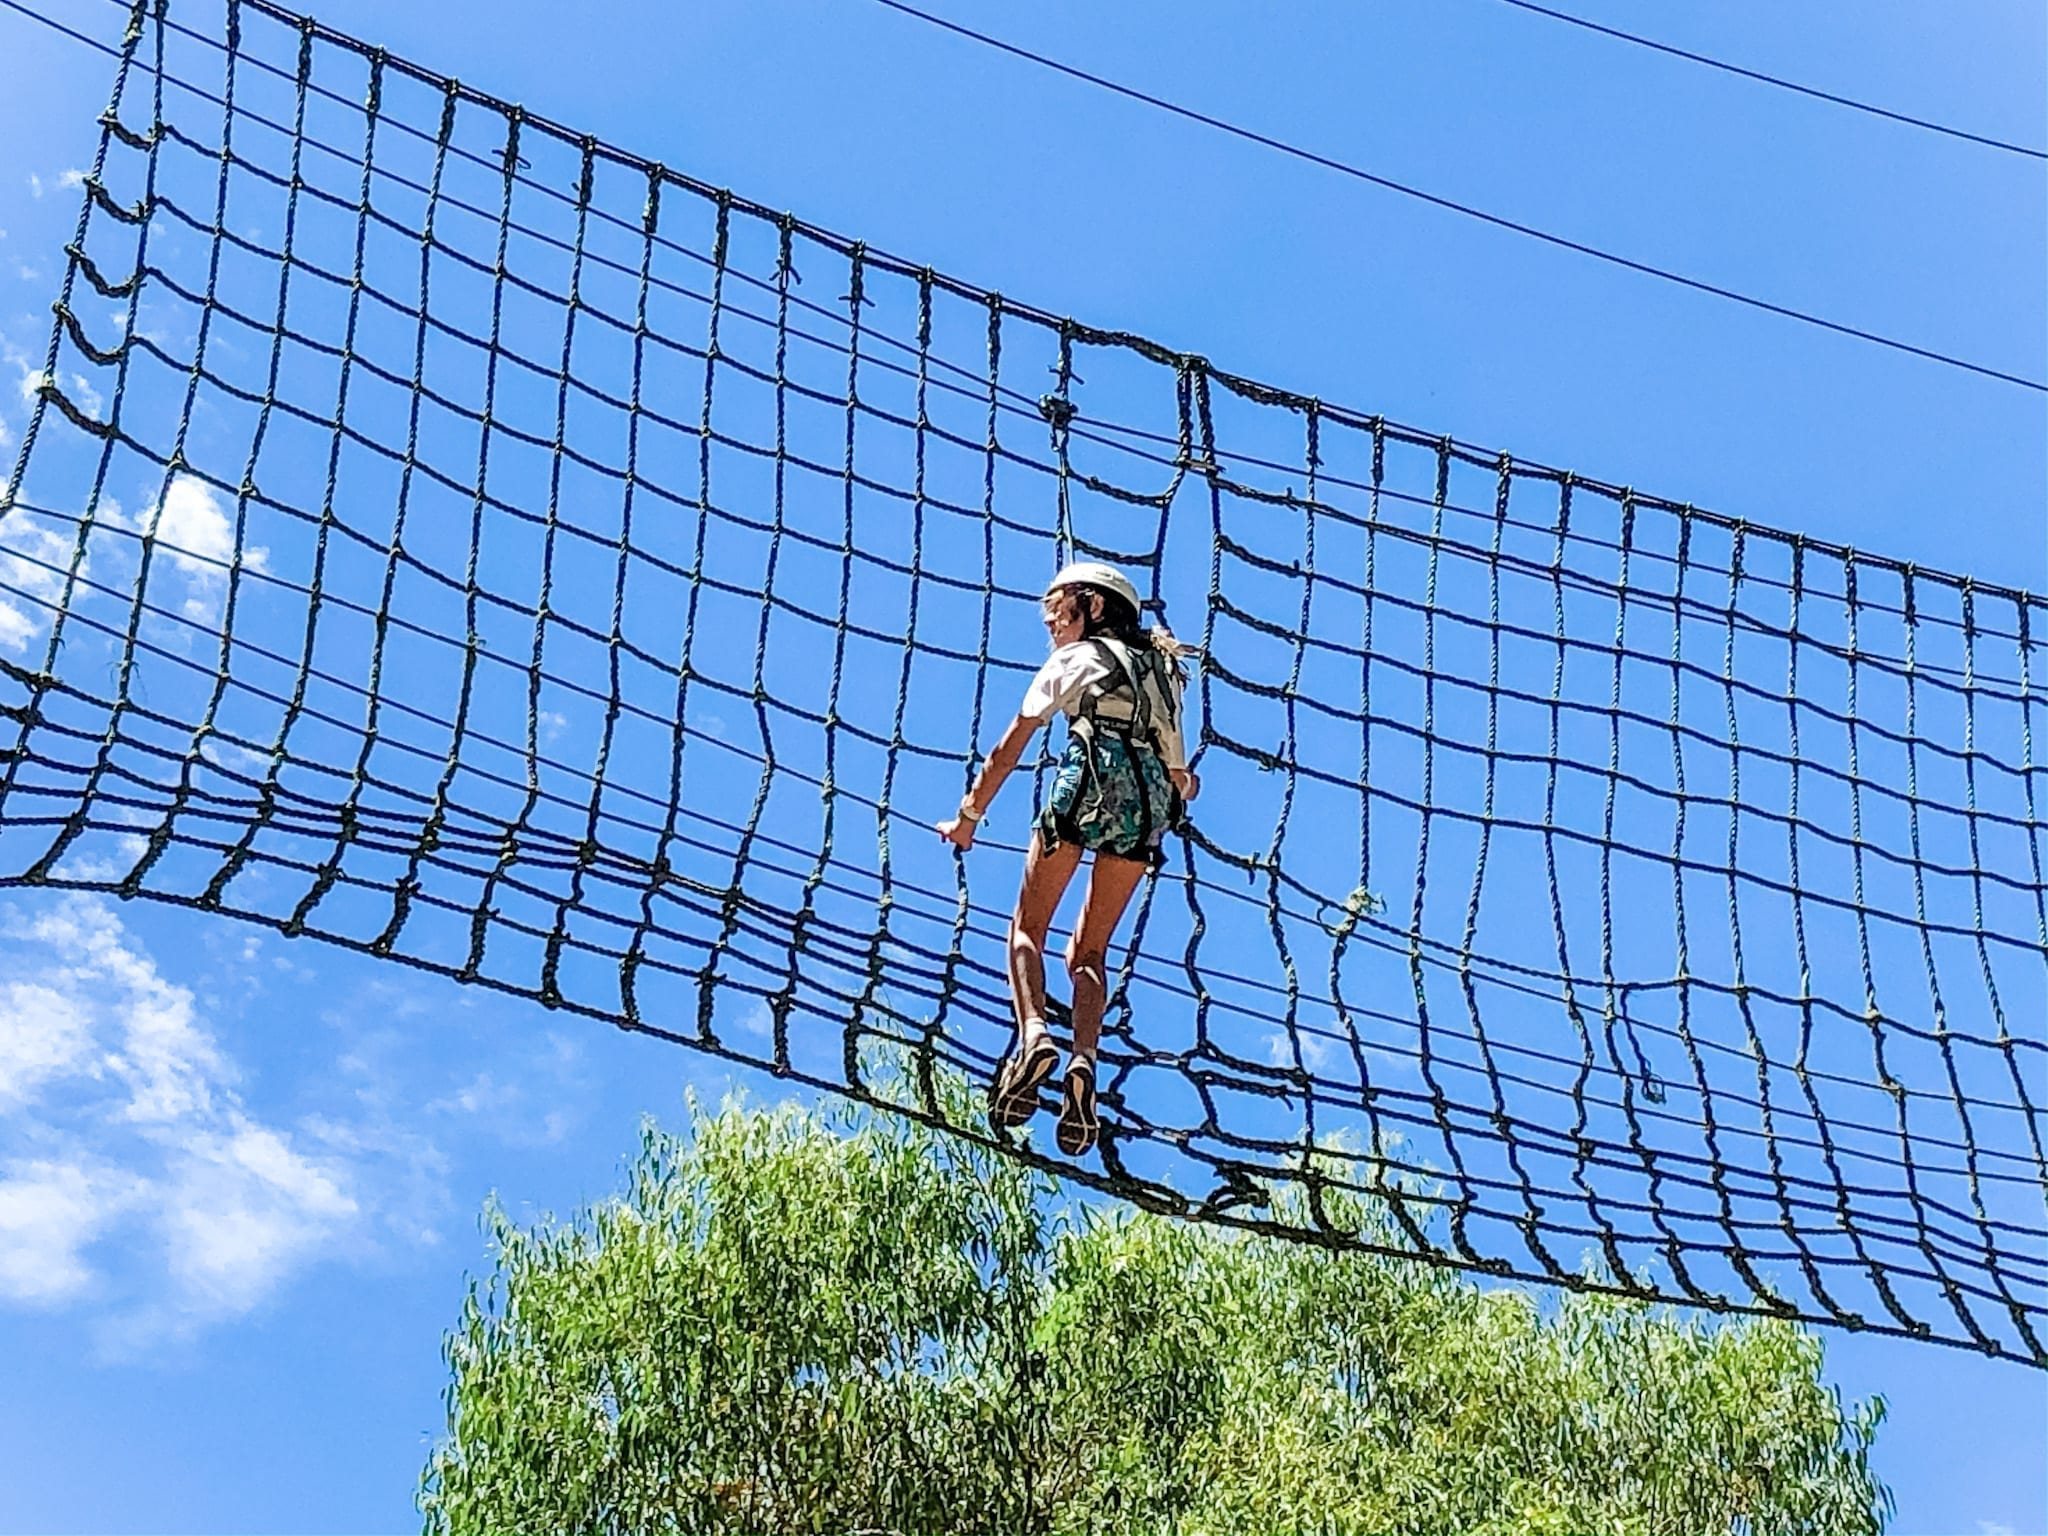 Swan valley Adventure Centre High Ropes Course